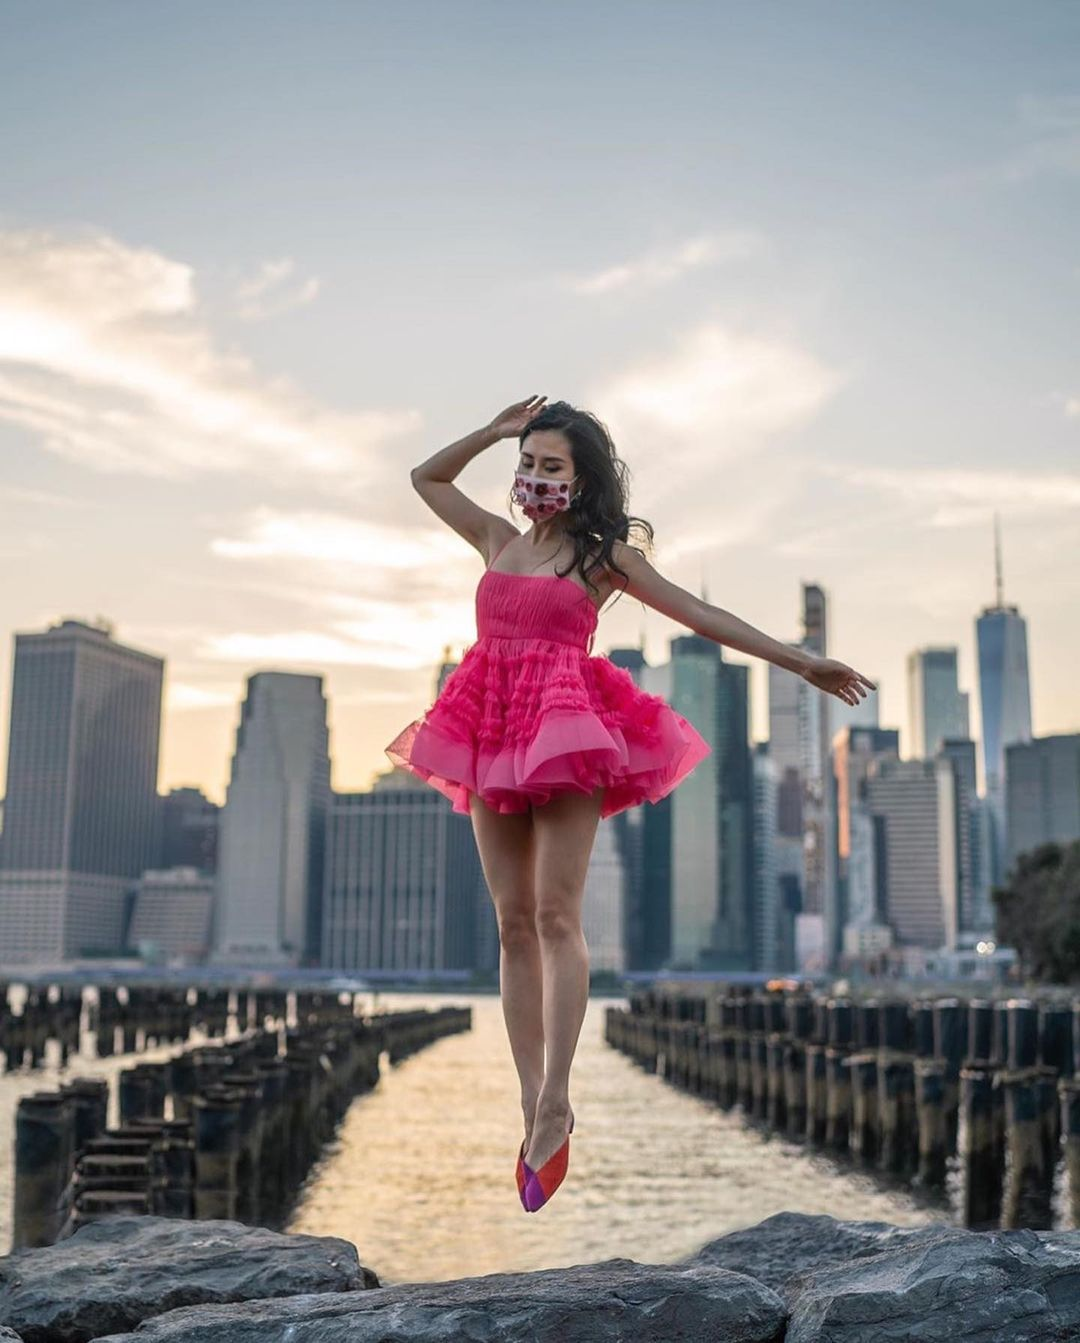 Girl in pink dress in front of city skyline